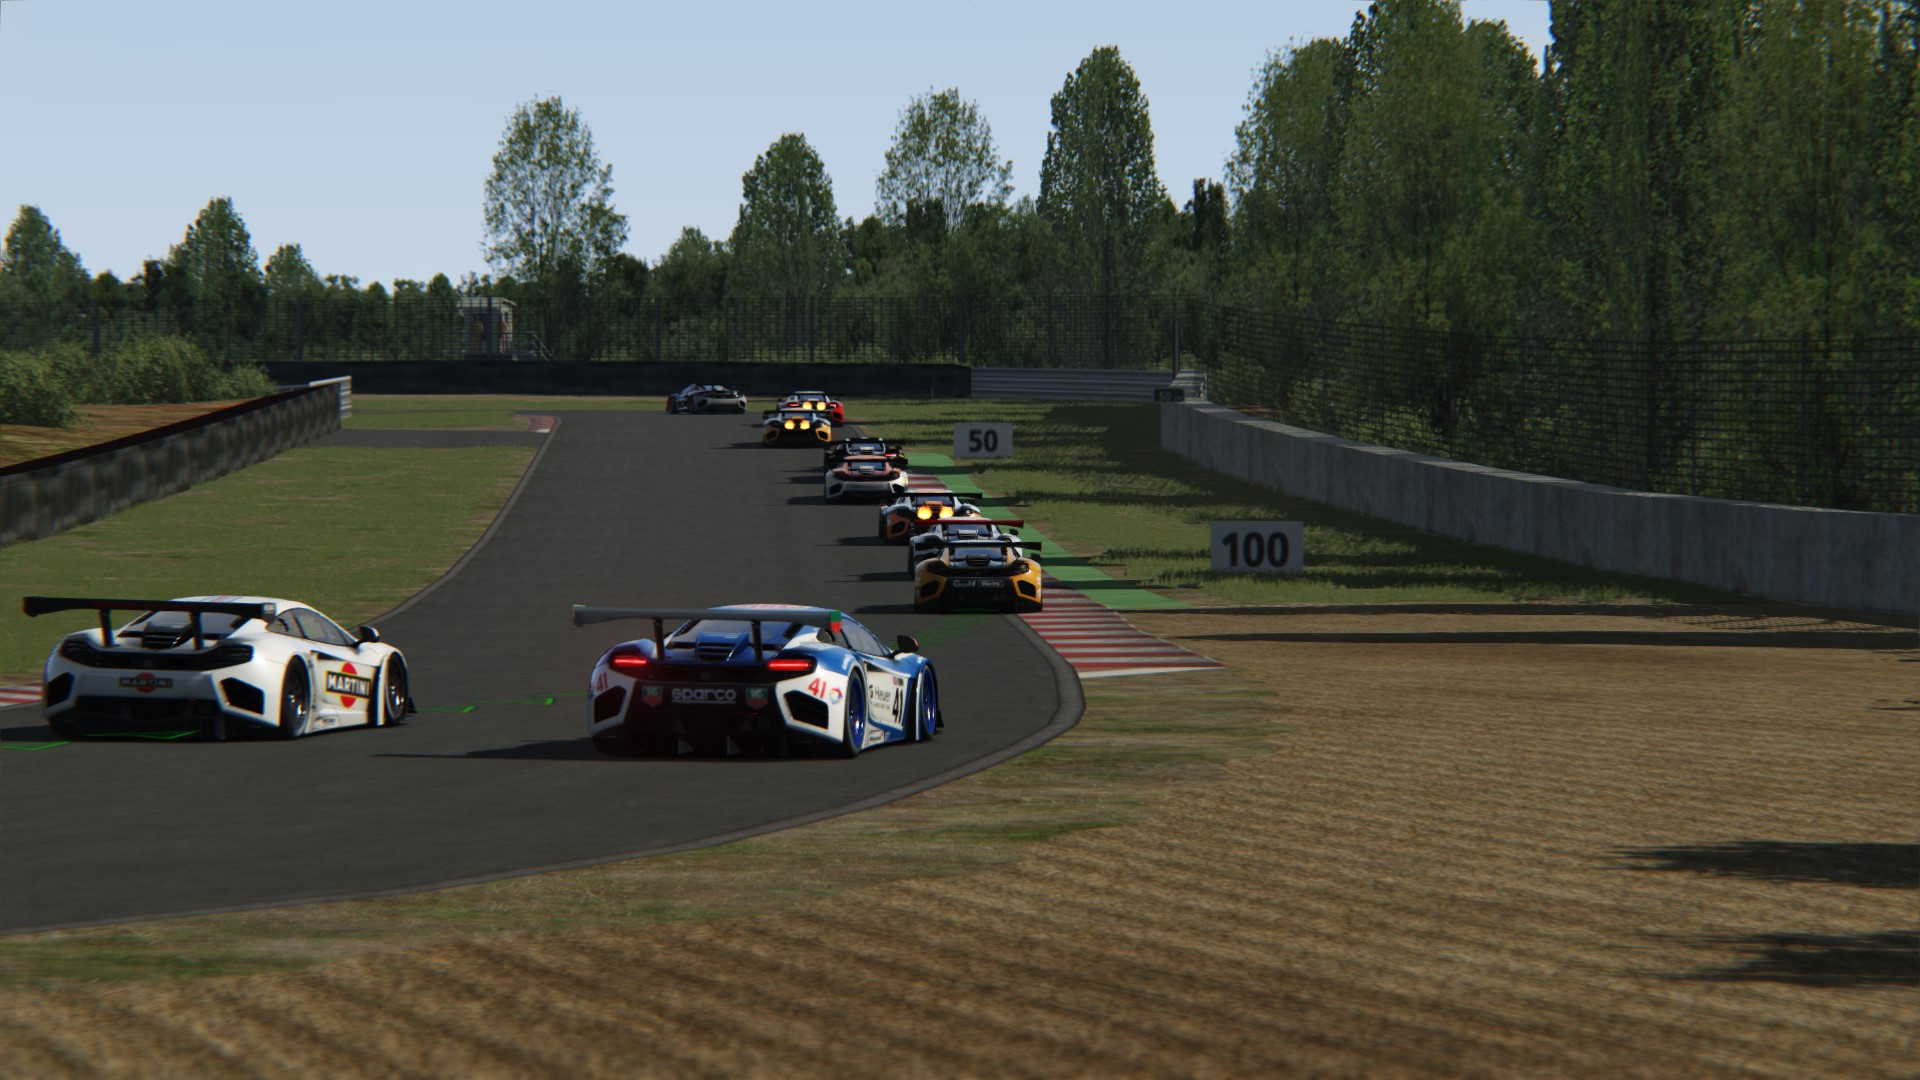 Screenshot_mclaren_mp412c_gt3_sportsland_sugo_7-4-116-10-32-58.jpg